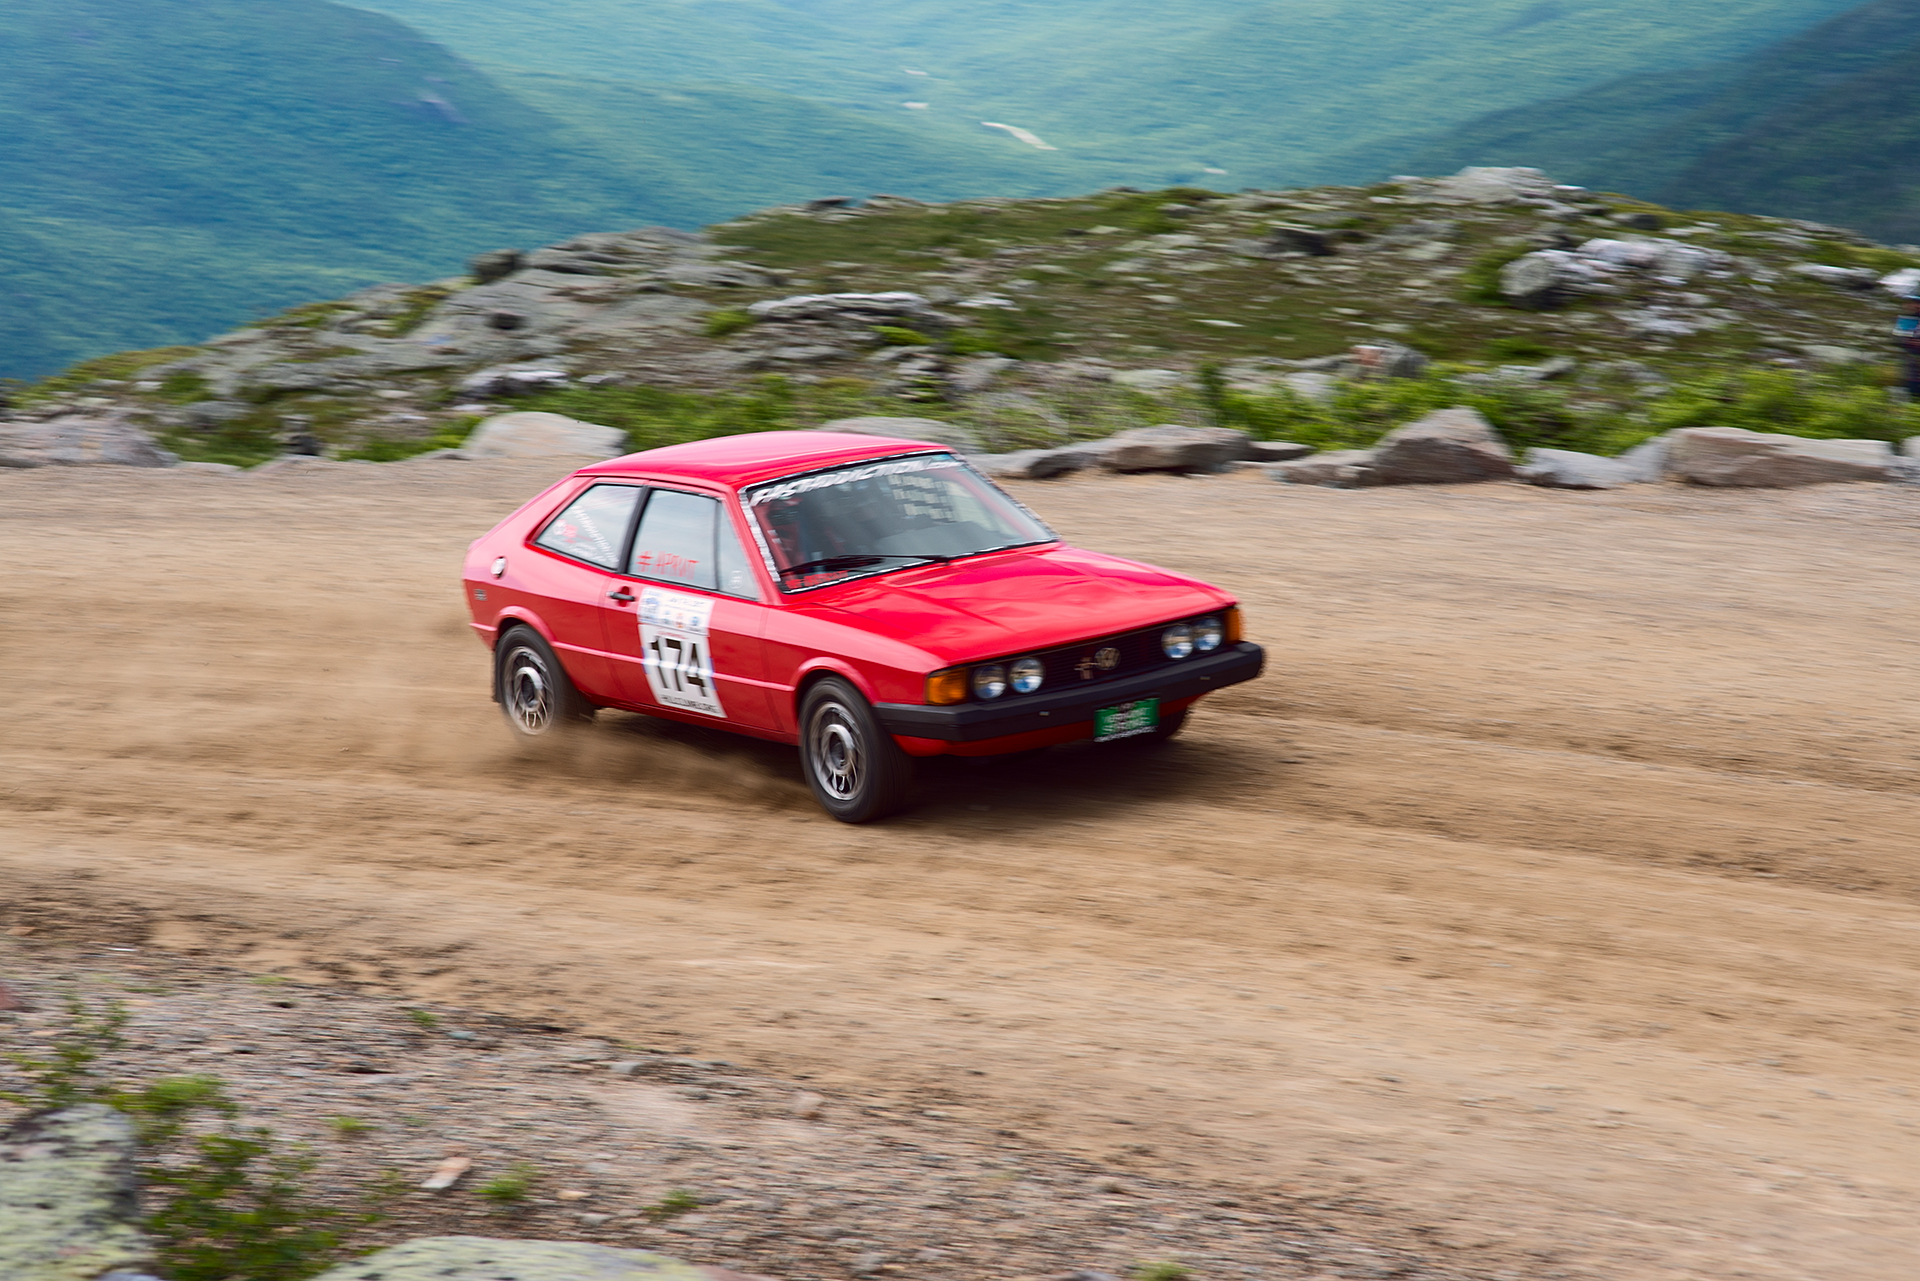 Car 174 at Climb to the Clouds 2017